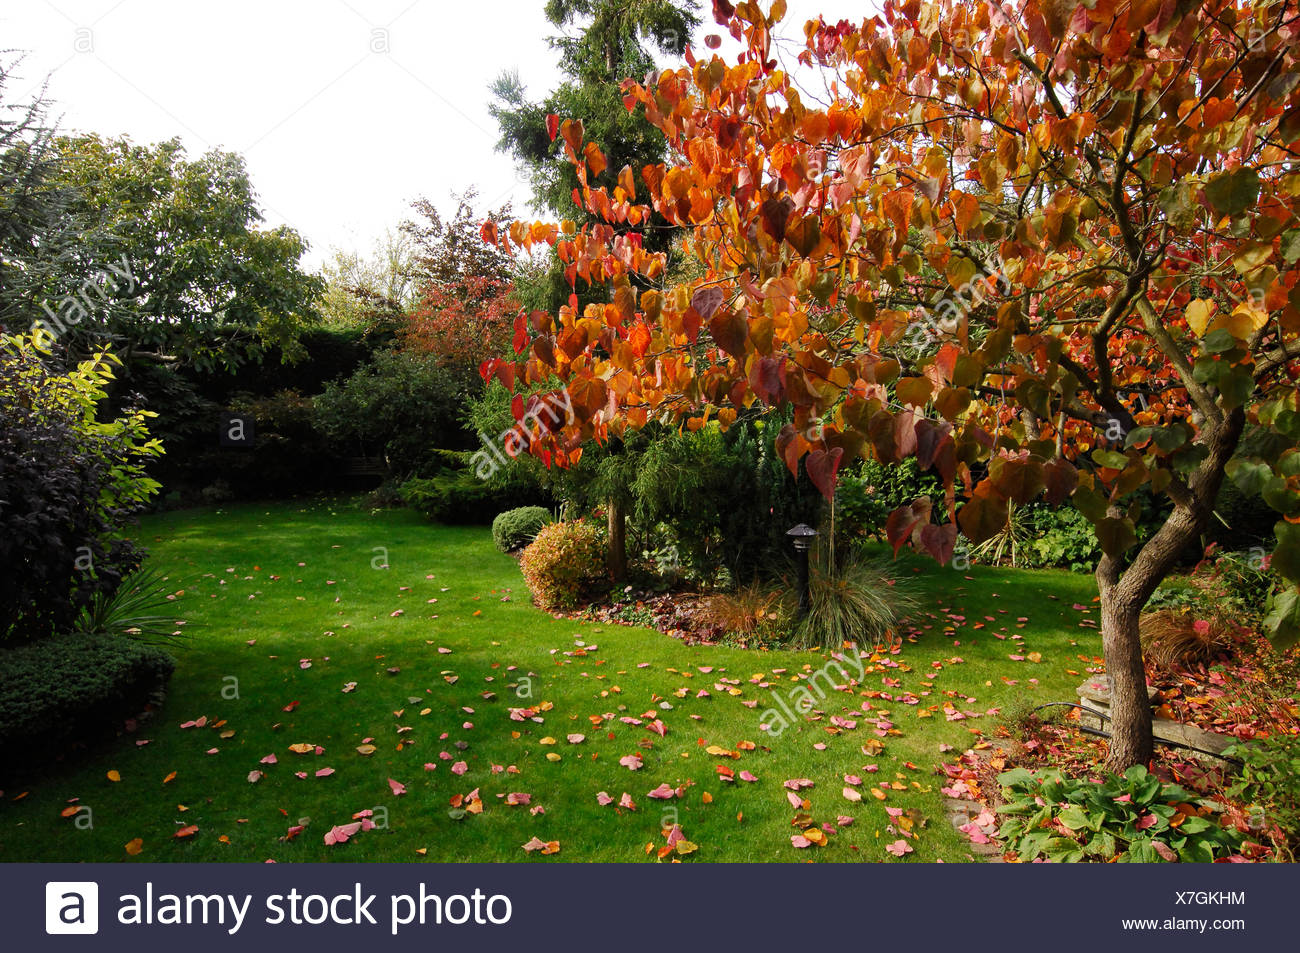 View Of Linden Tree Stock Photos & View Of Linden Tree Stock Images ...